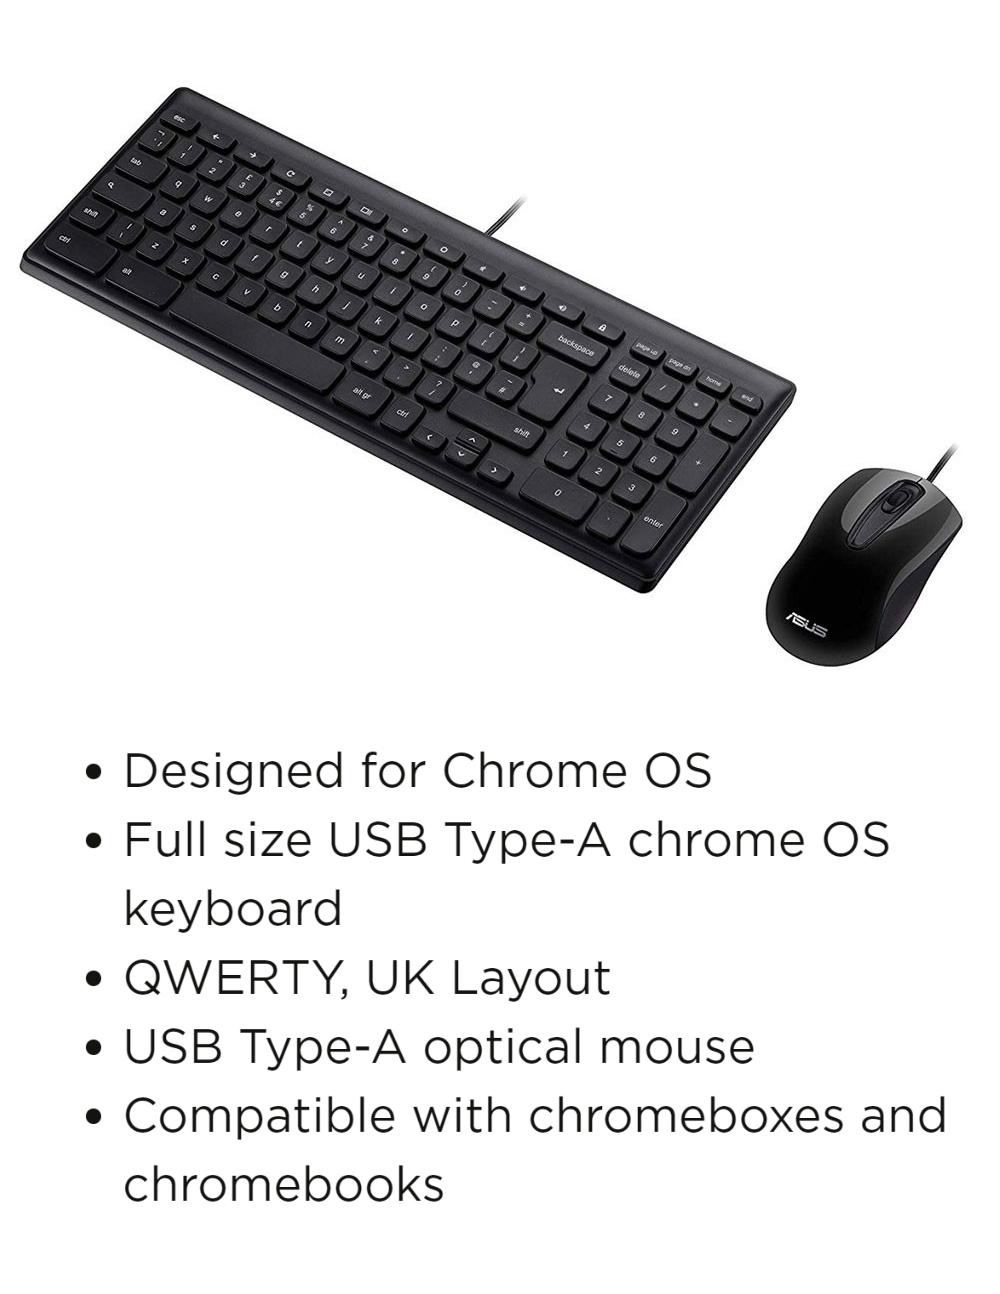 A large marketing image providing additional information about the product ASUS Chrome Wired Keyboard & Mouse Kit - Additional alt info not provided